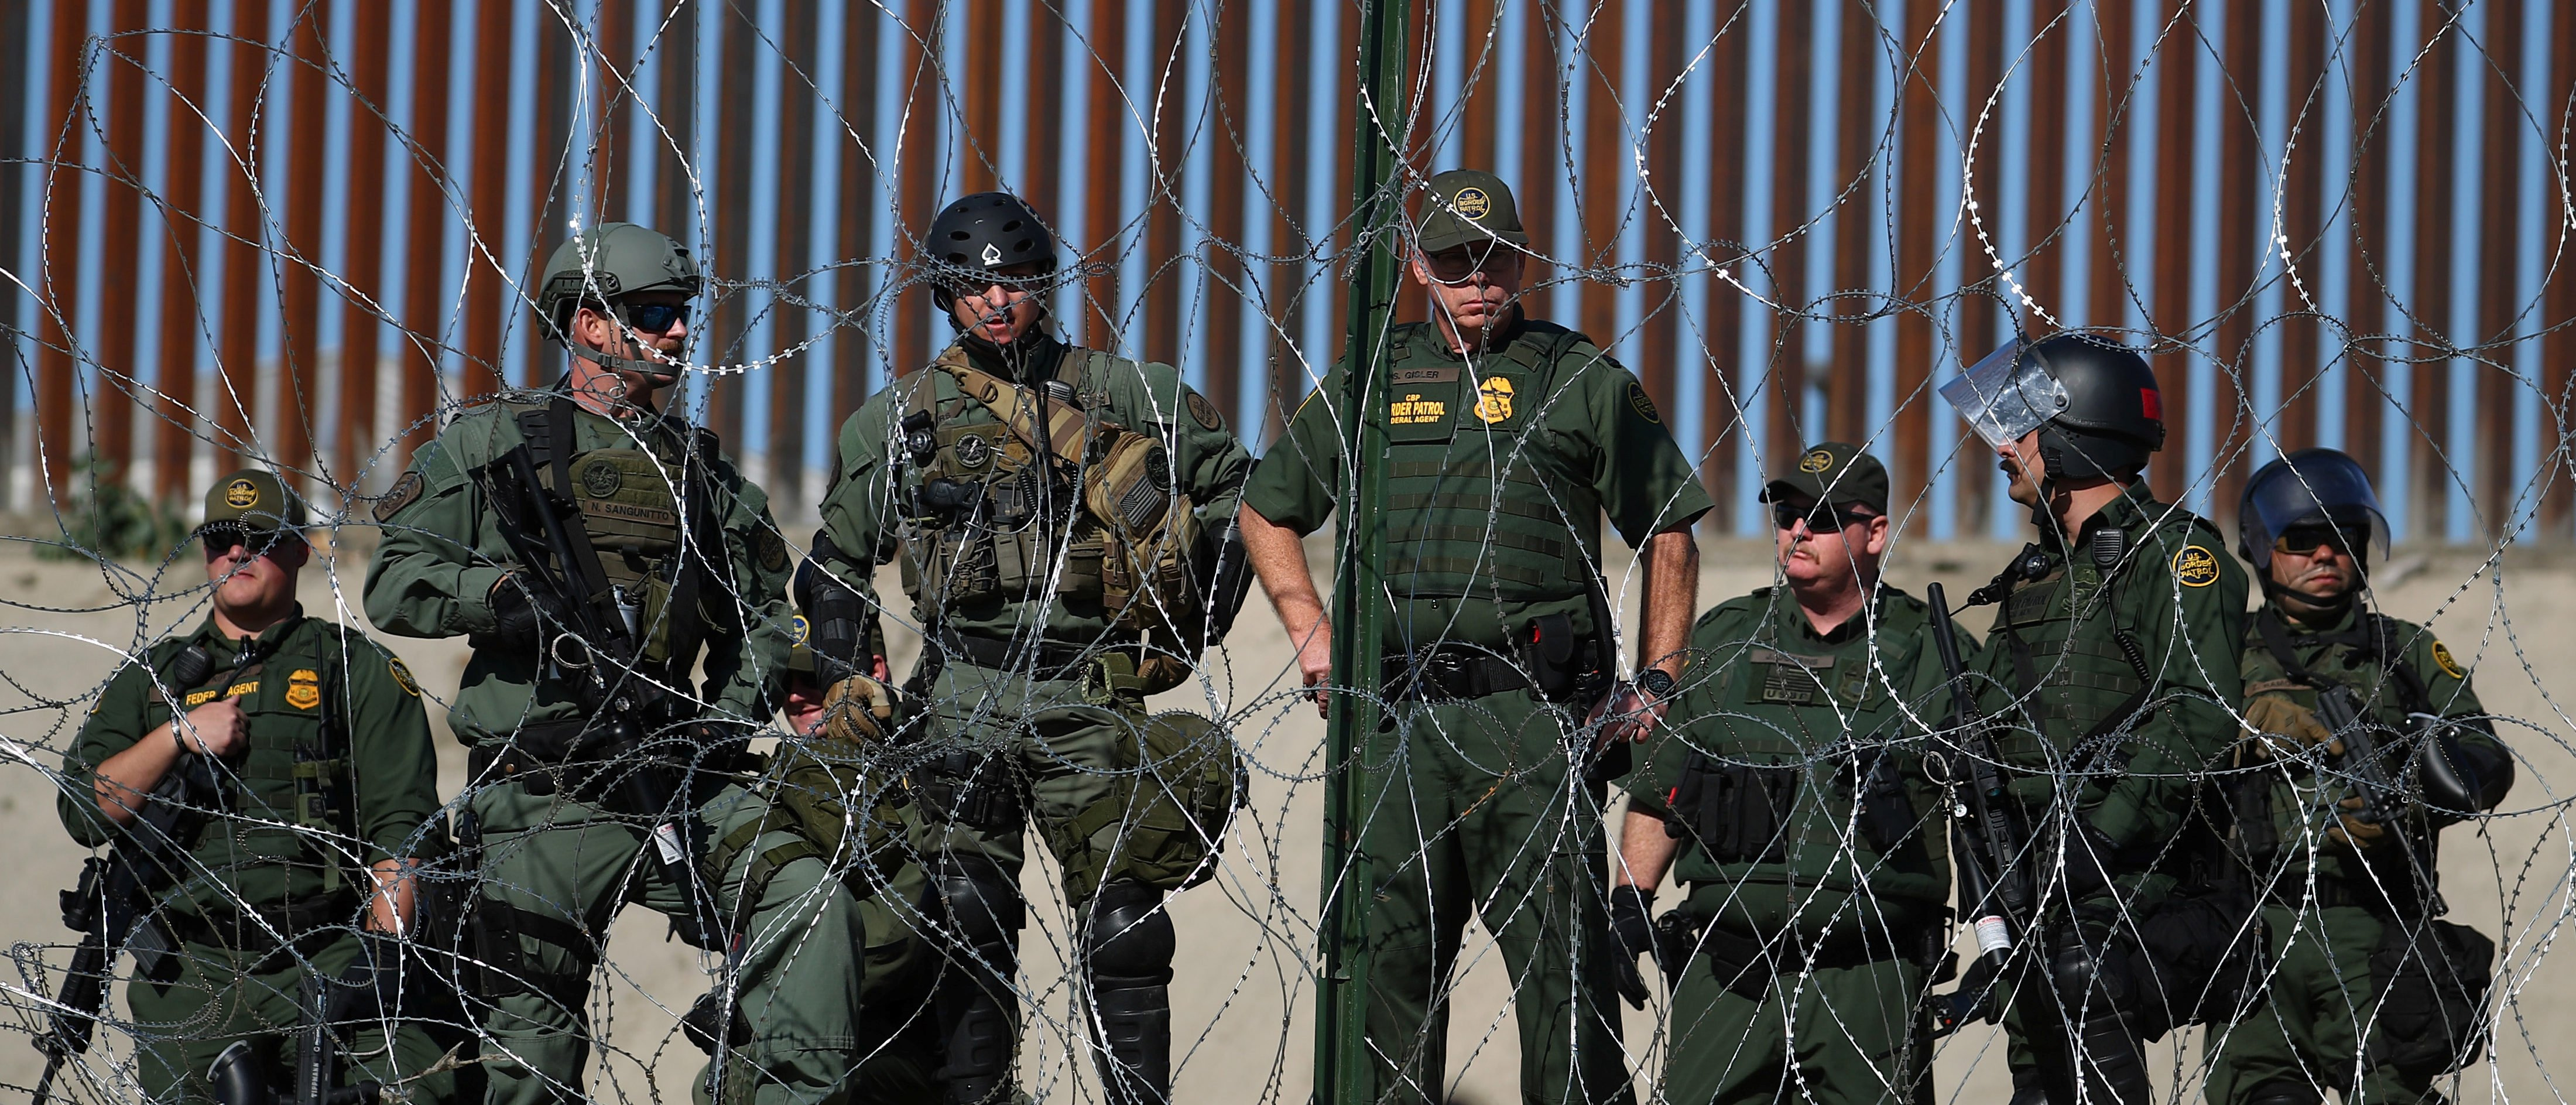 U.S border patrol stand near the border fence between Mexico and the United States as migrants stand near by in Tijuana, Mexico, November 25, 2018. REUTERS/Hannah McKay